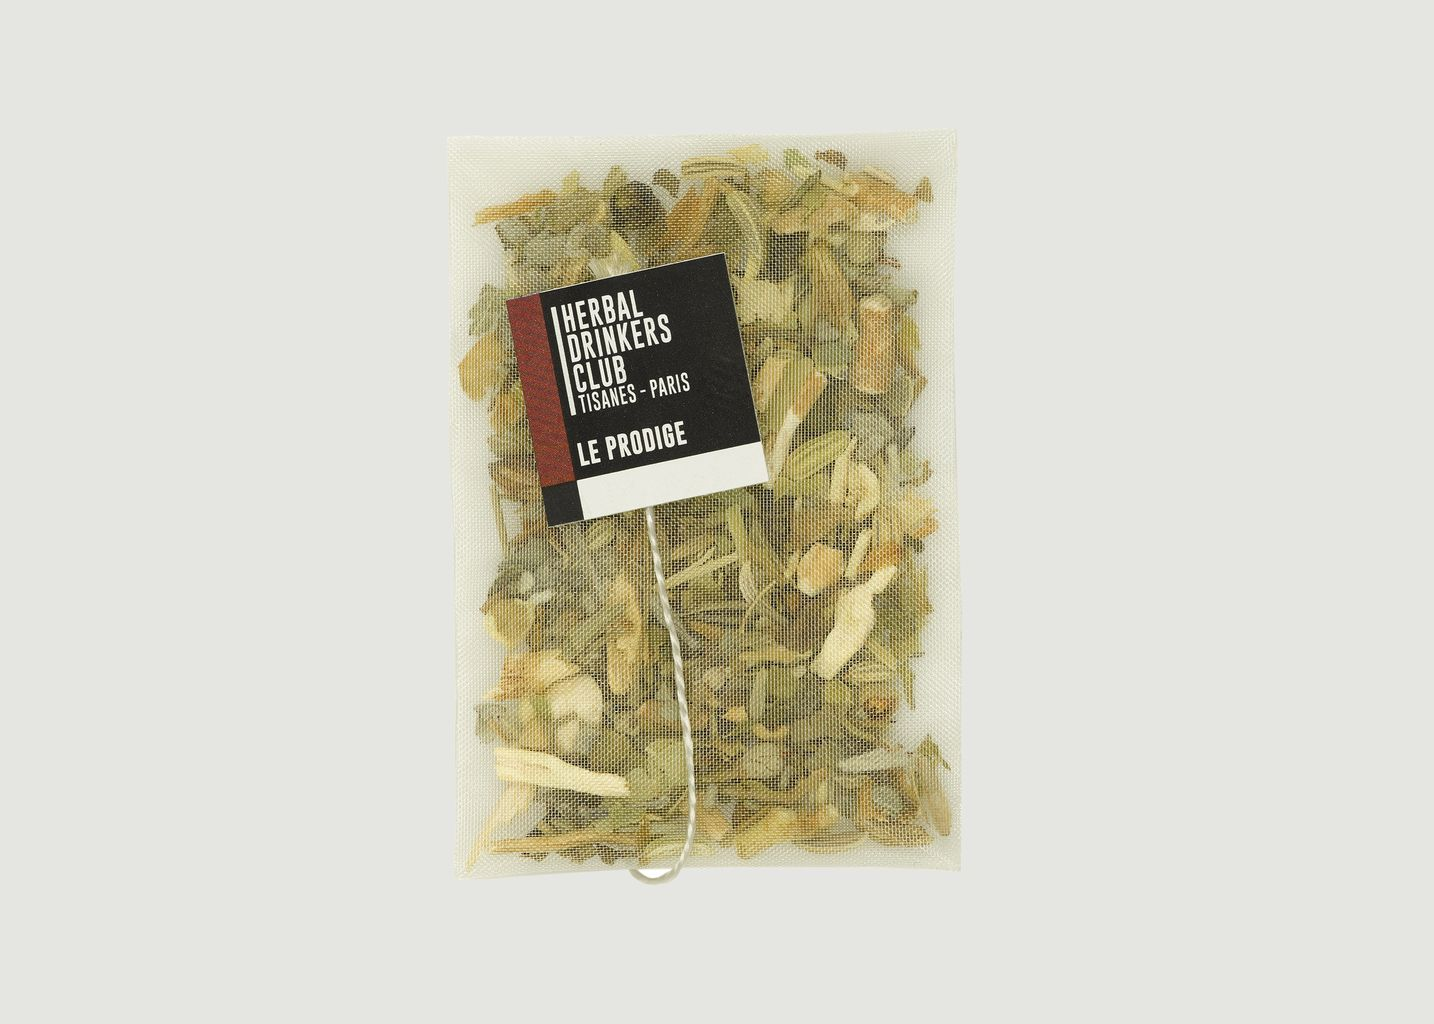 Tisane Le Prodige - Herbal Drinkers Club